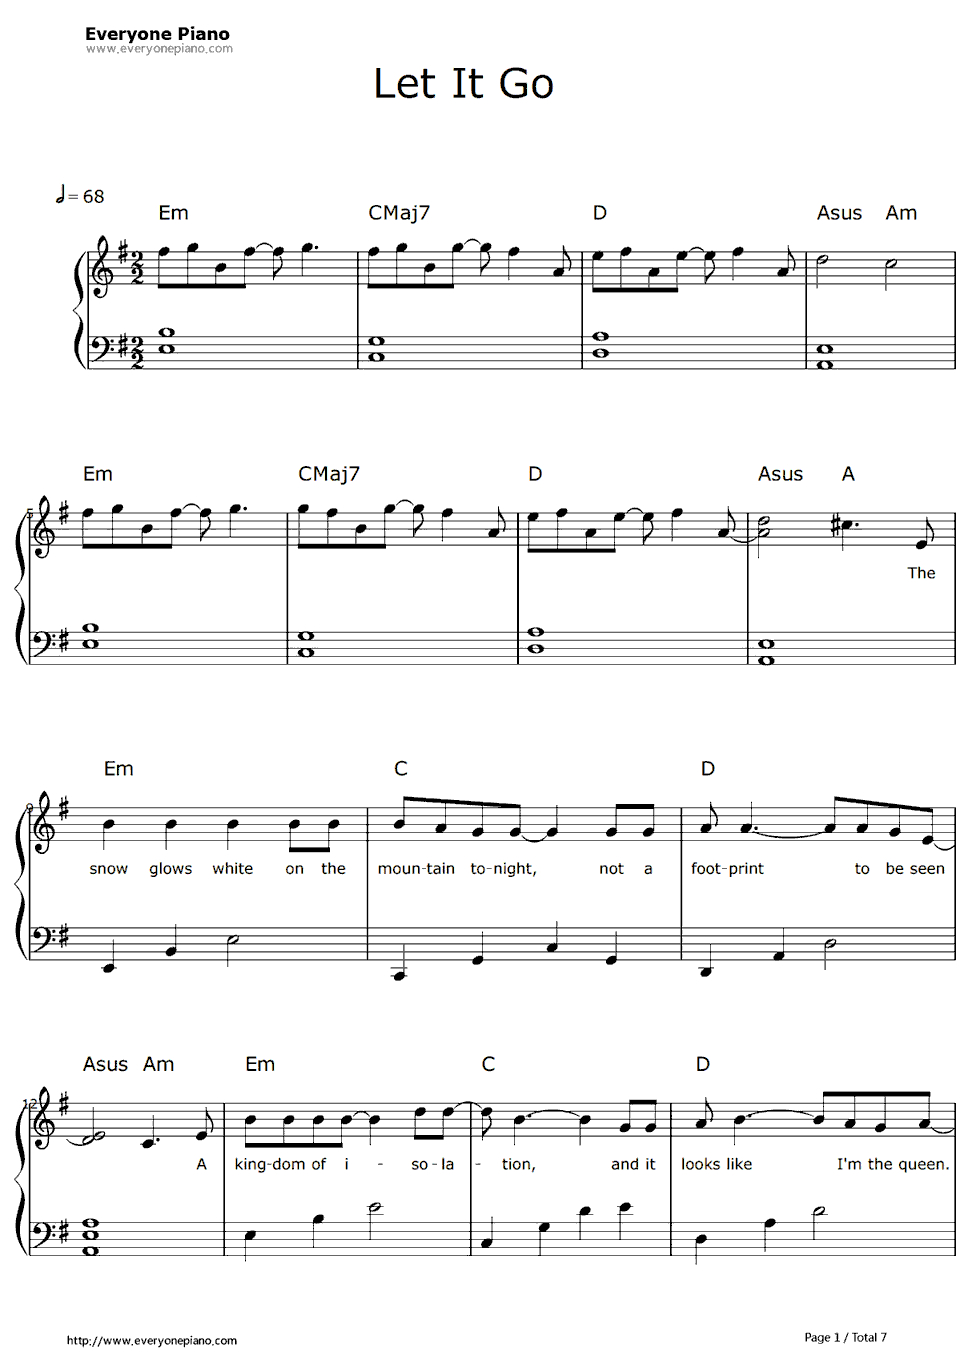 Free Let It Go Easy Version-Frozen Theme Sheet Music Preview 1 - Let It Go Violin Sheet Music Free Printable